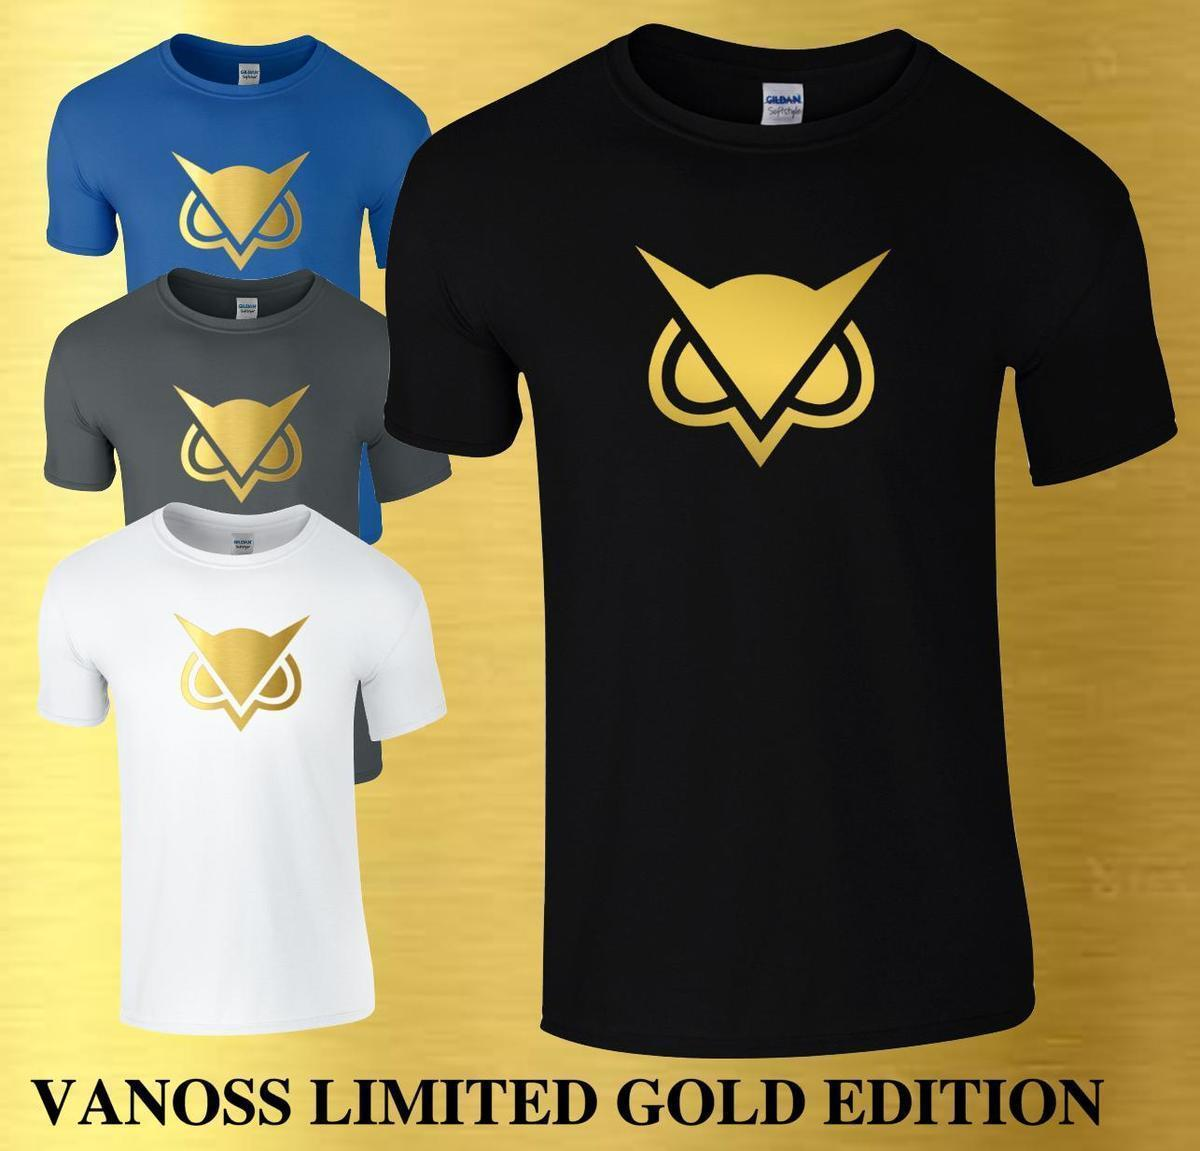 6477da3fb6 Vanoss Youtuber T Shirt Cool VG Gaming Inspired YouTube Kids & Mens Gamers  Top T Shirts Shopping Online T Shirts Sites From Lefan01, $14.67| DHgate.Com